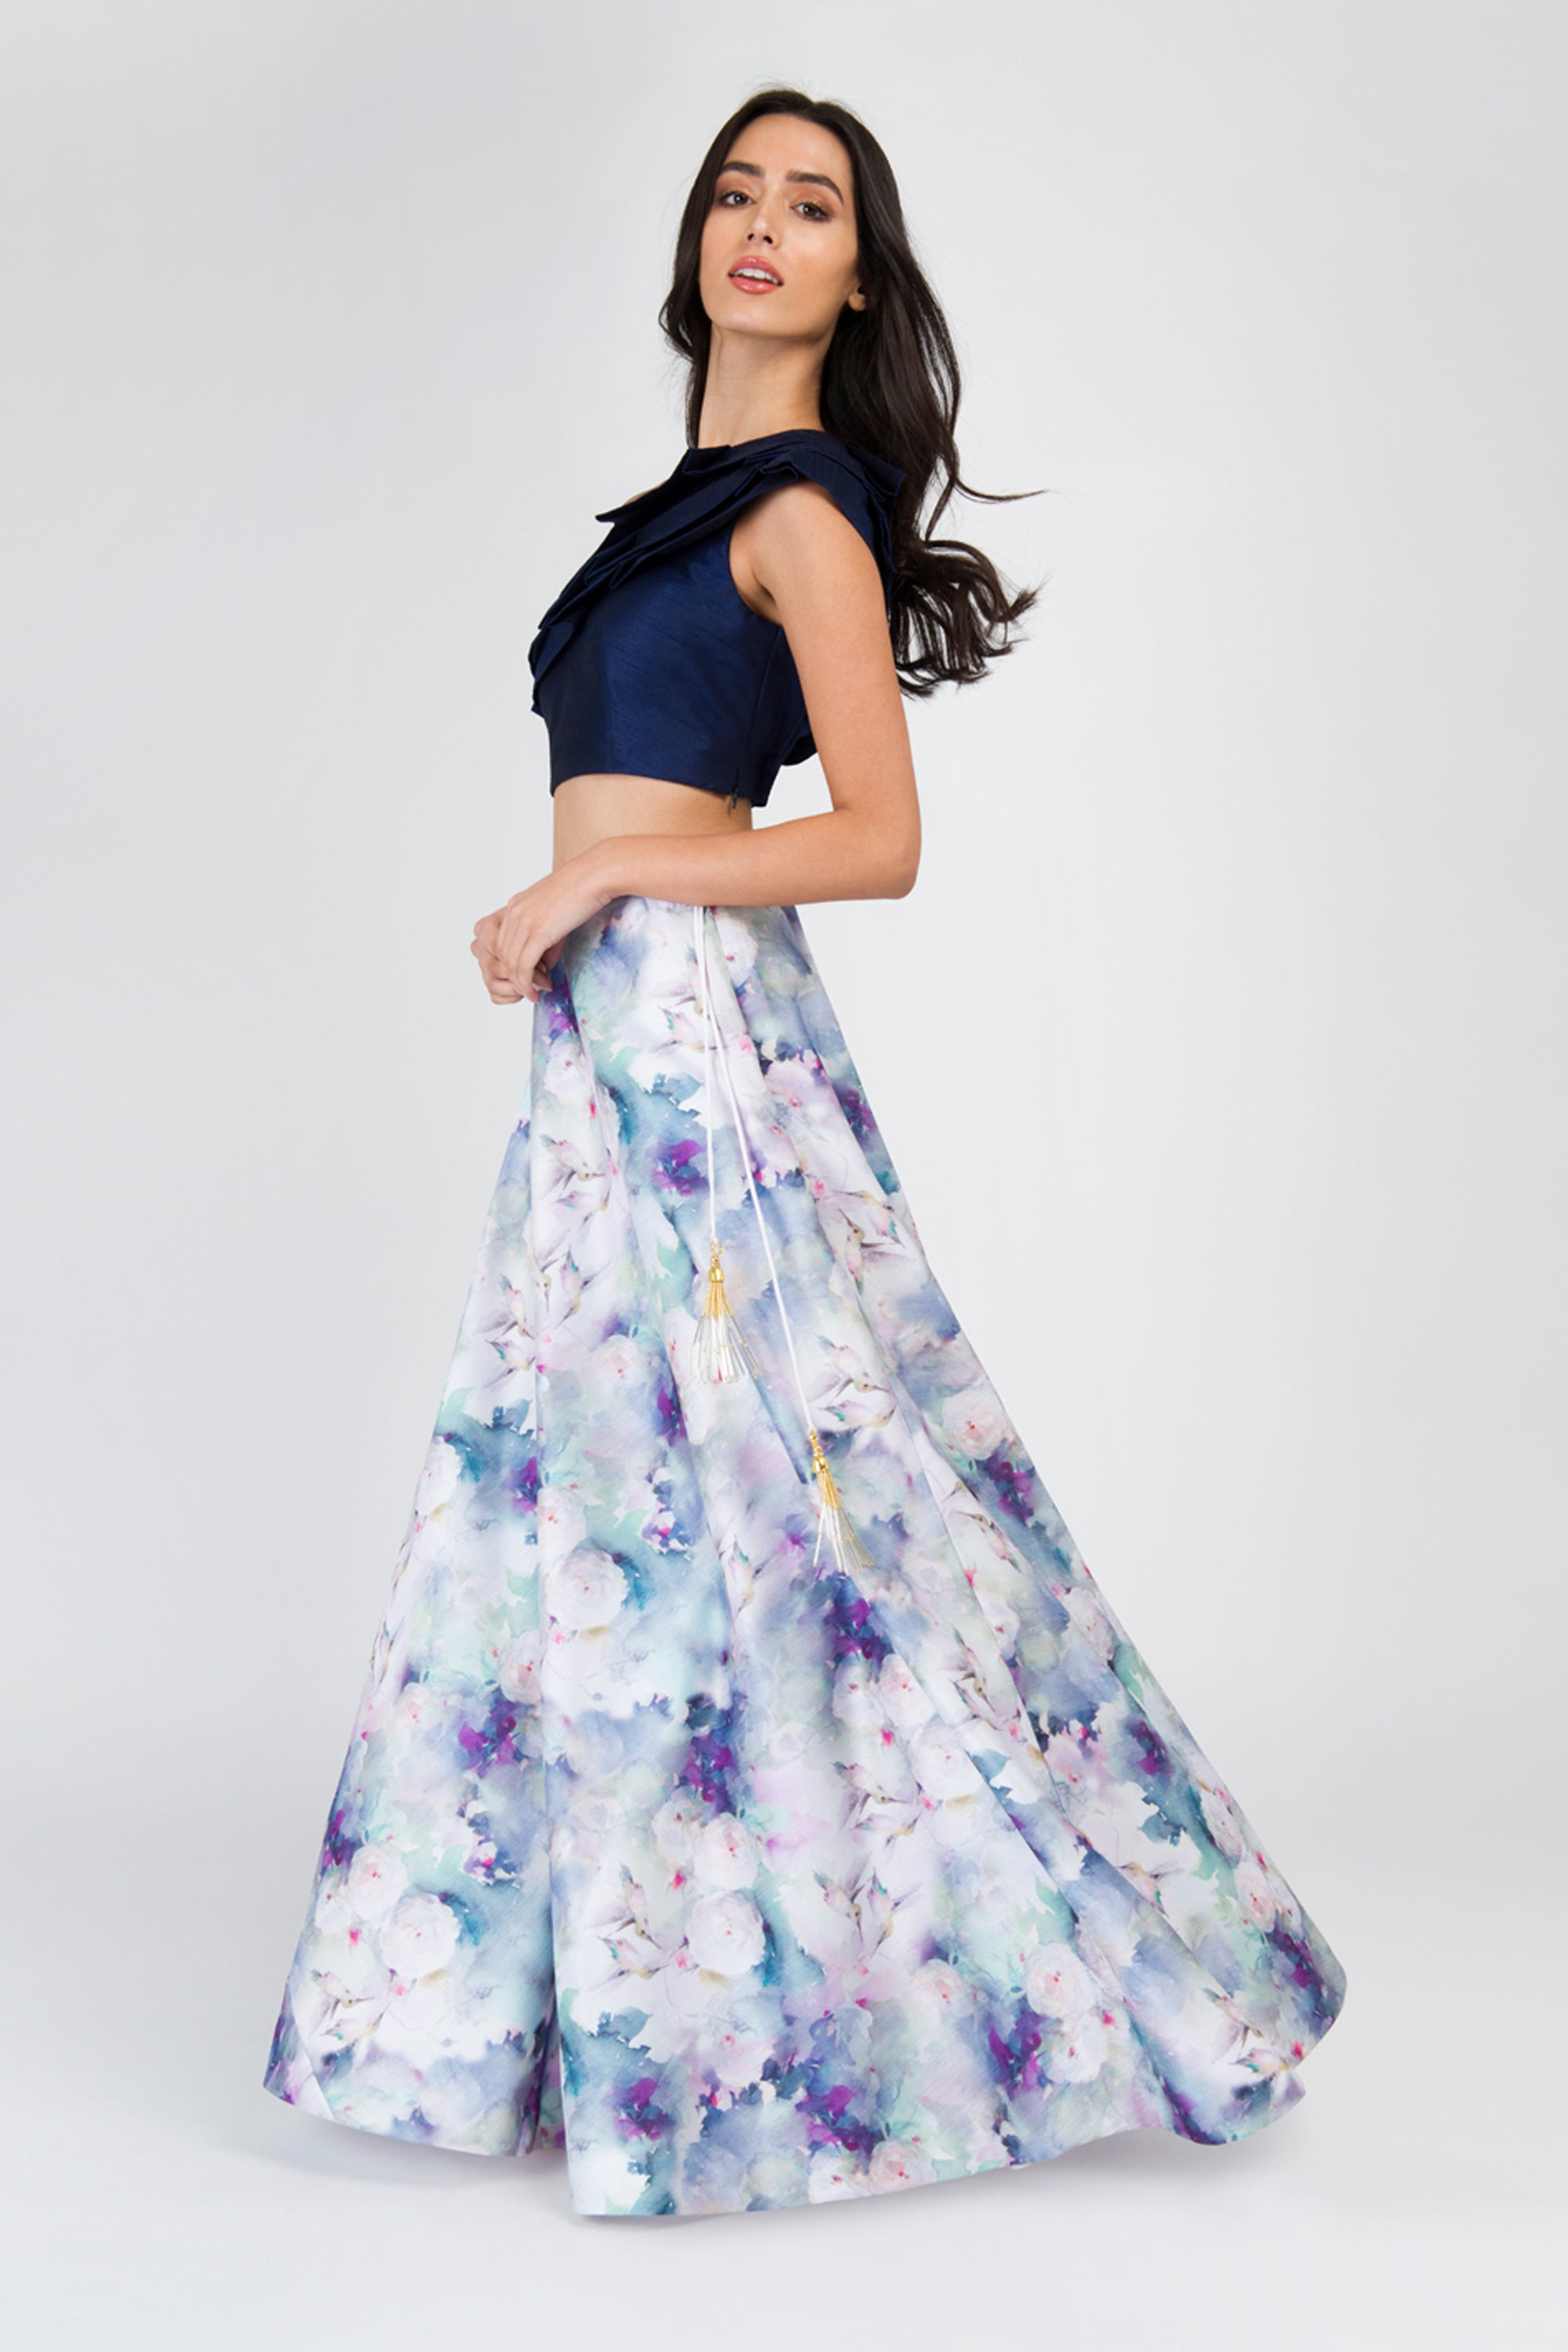 Off One Shoulder Navy Crop Top With Humming Bird Print Round Flare Skirt Lehenga Set SIDE